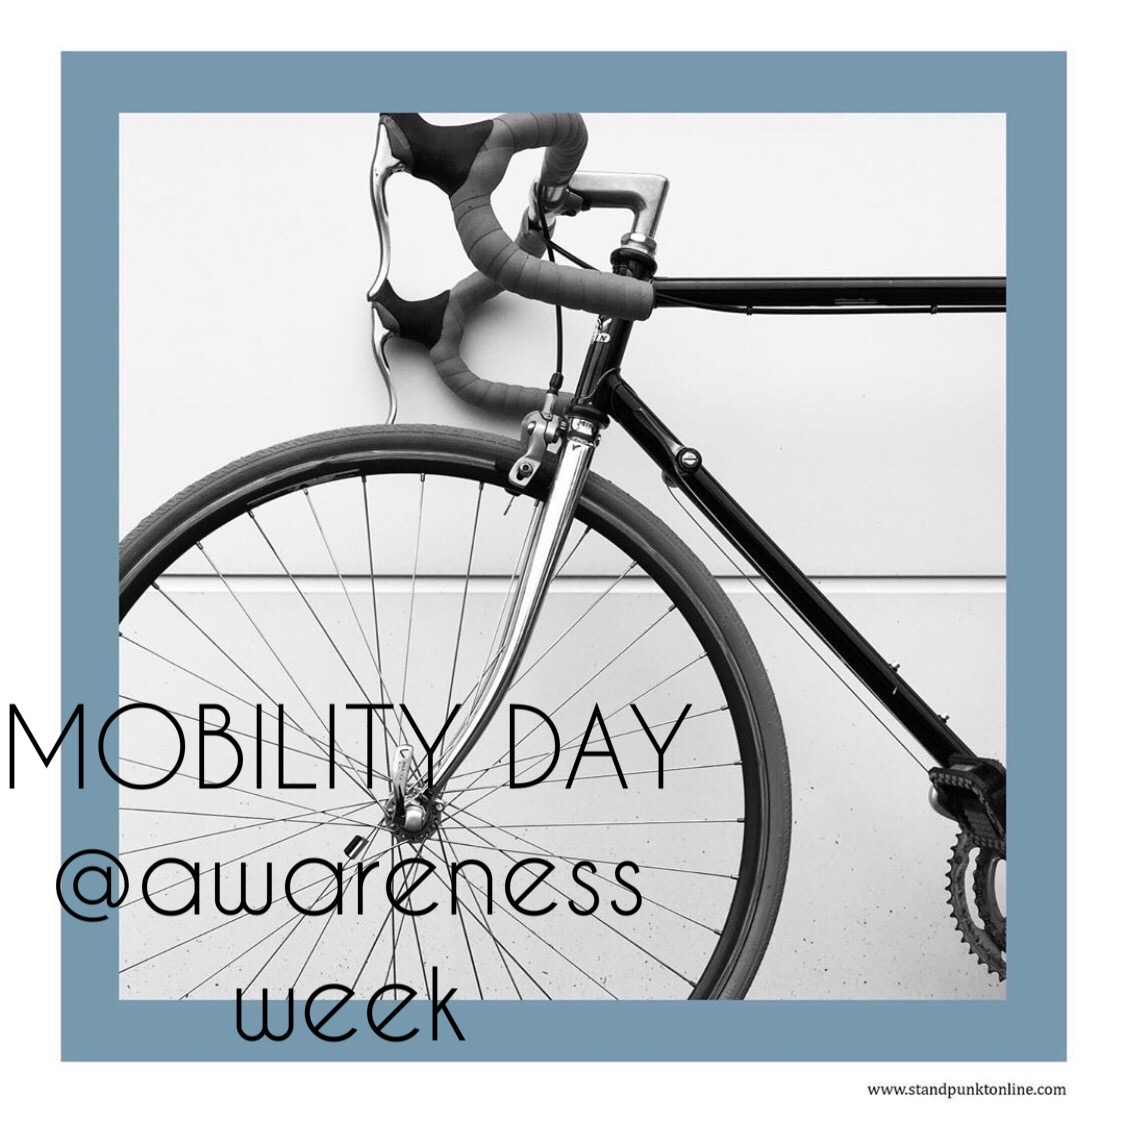 MOBILITY DAY @awareness week